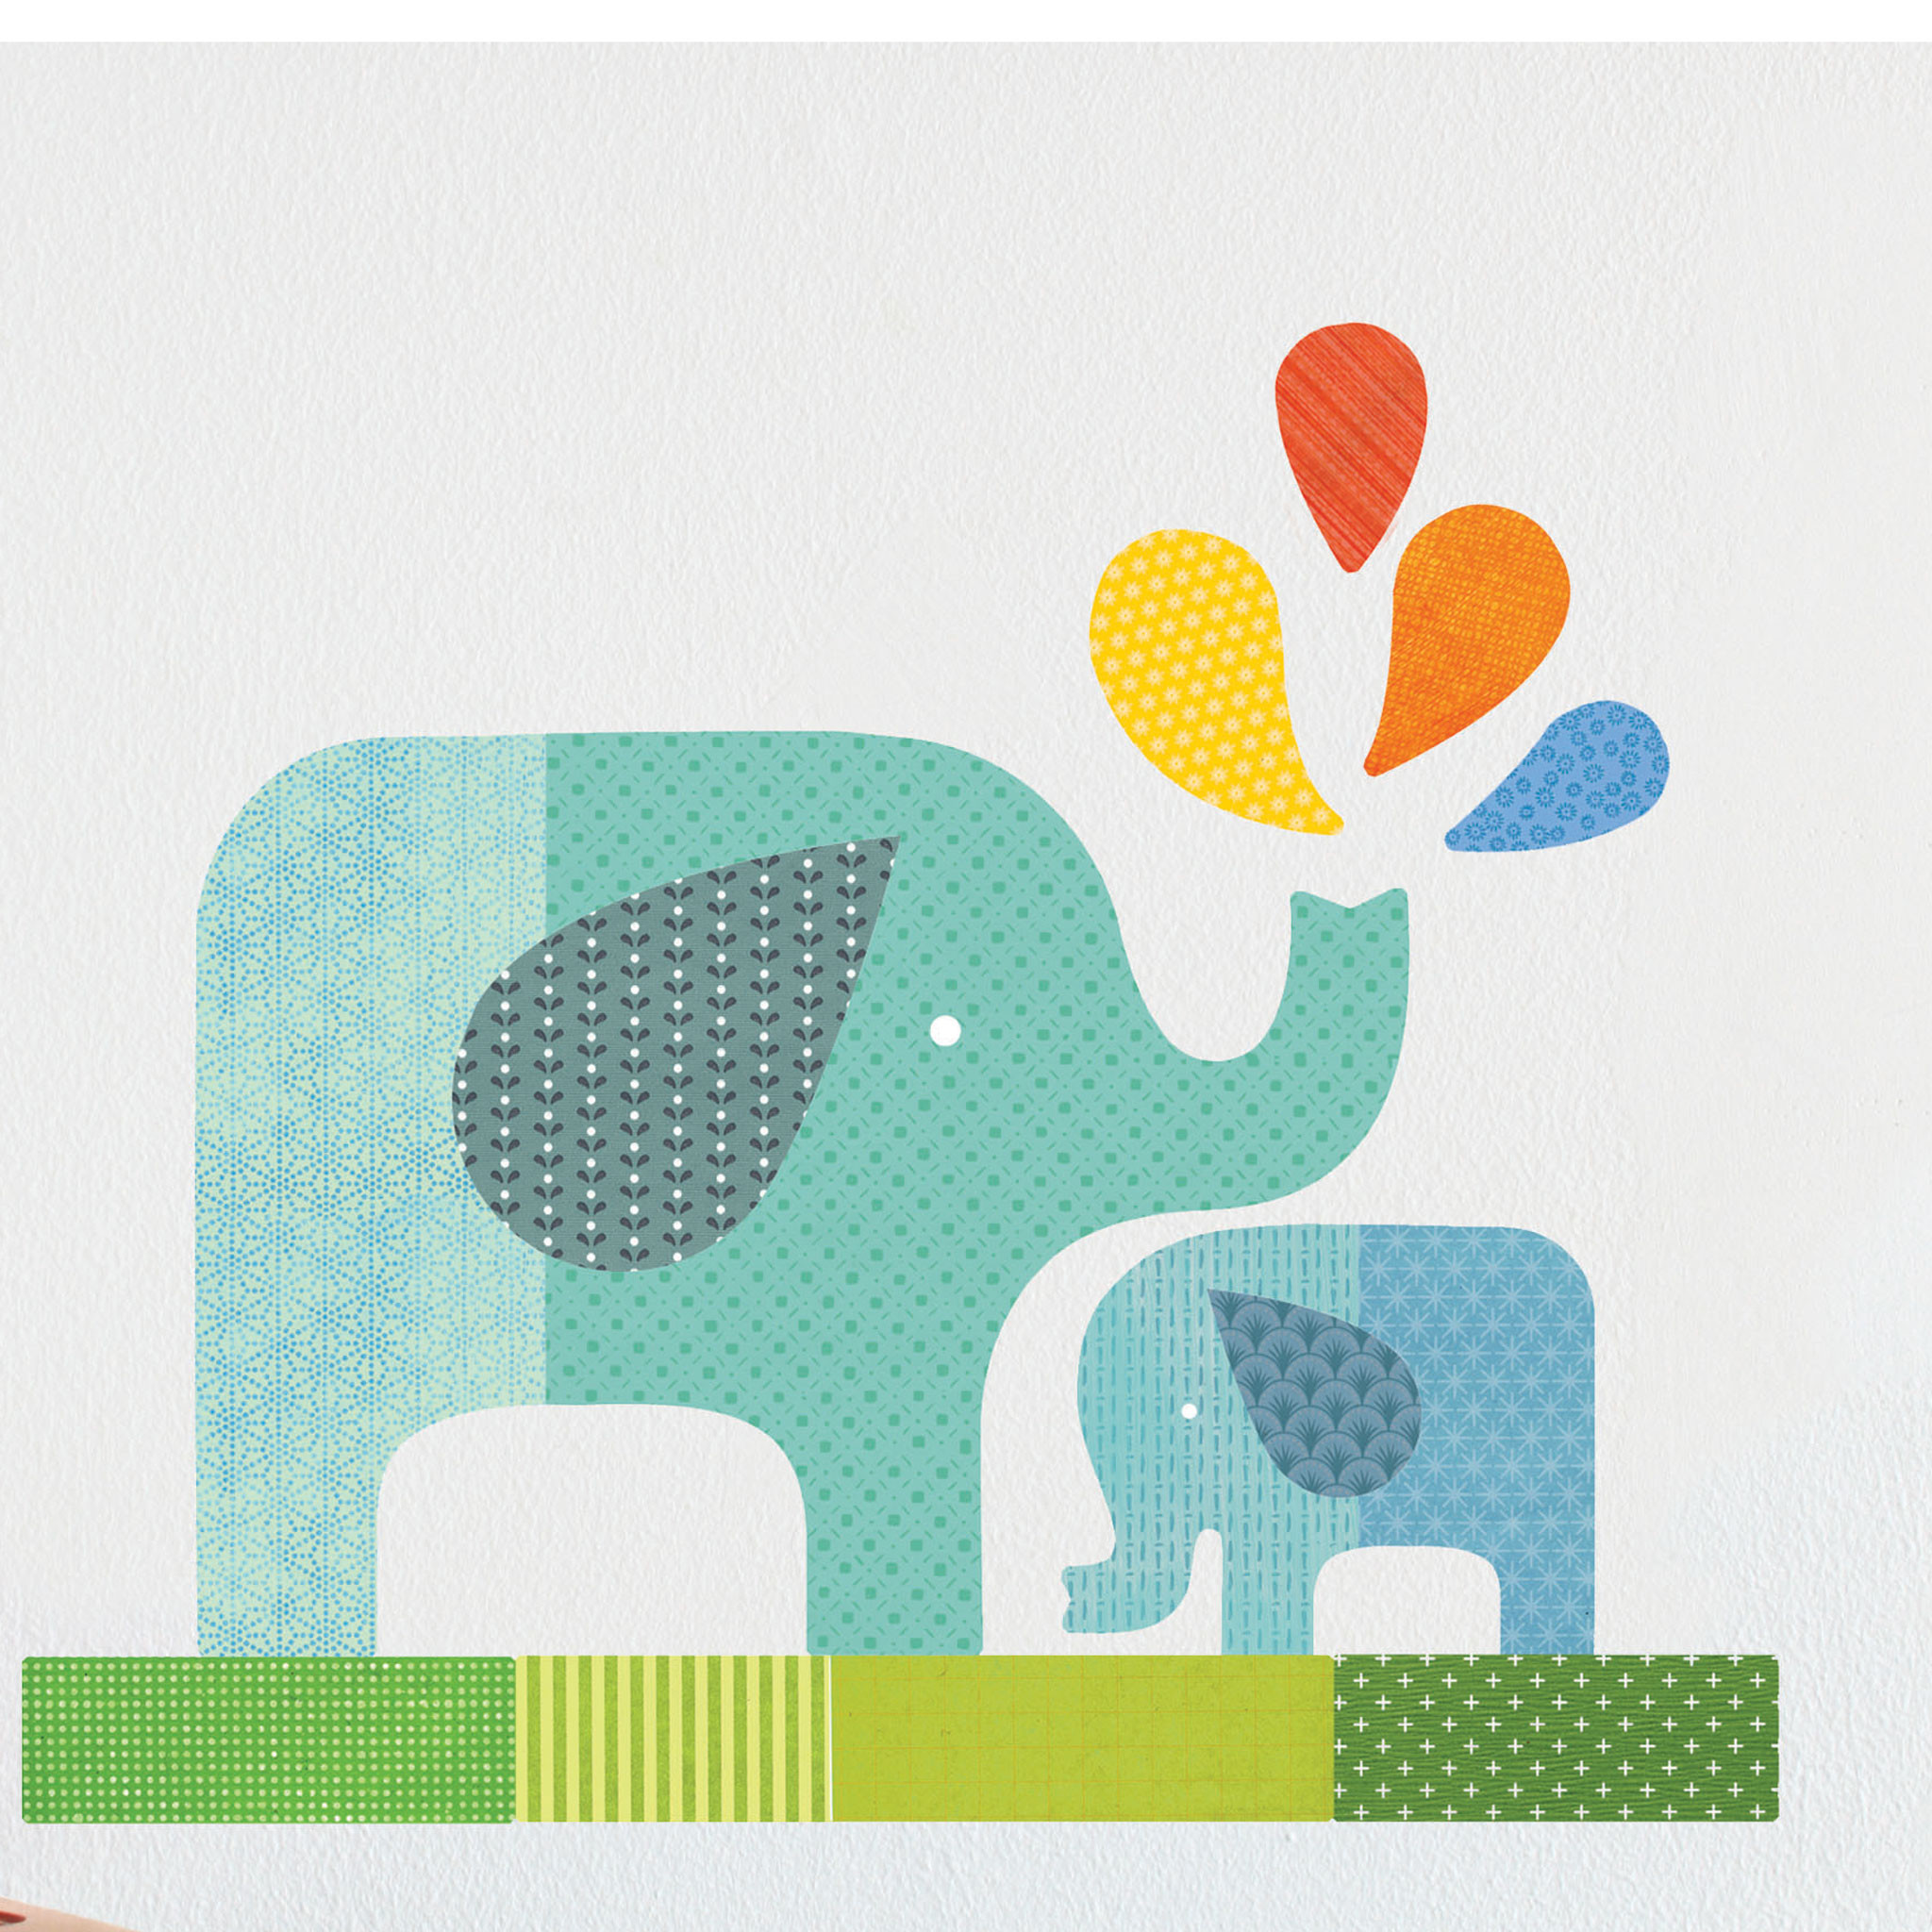 Picture of: Nursery Wall Decals slow